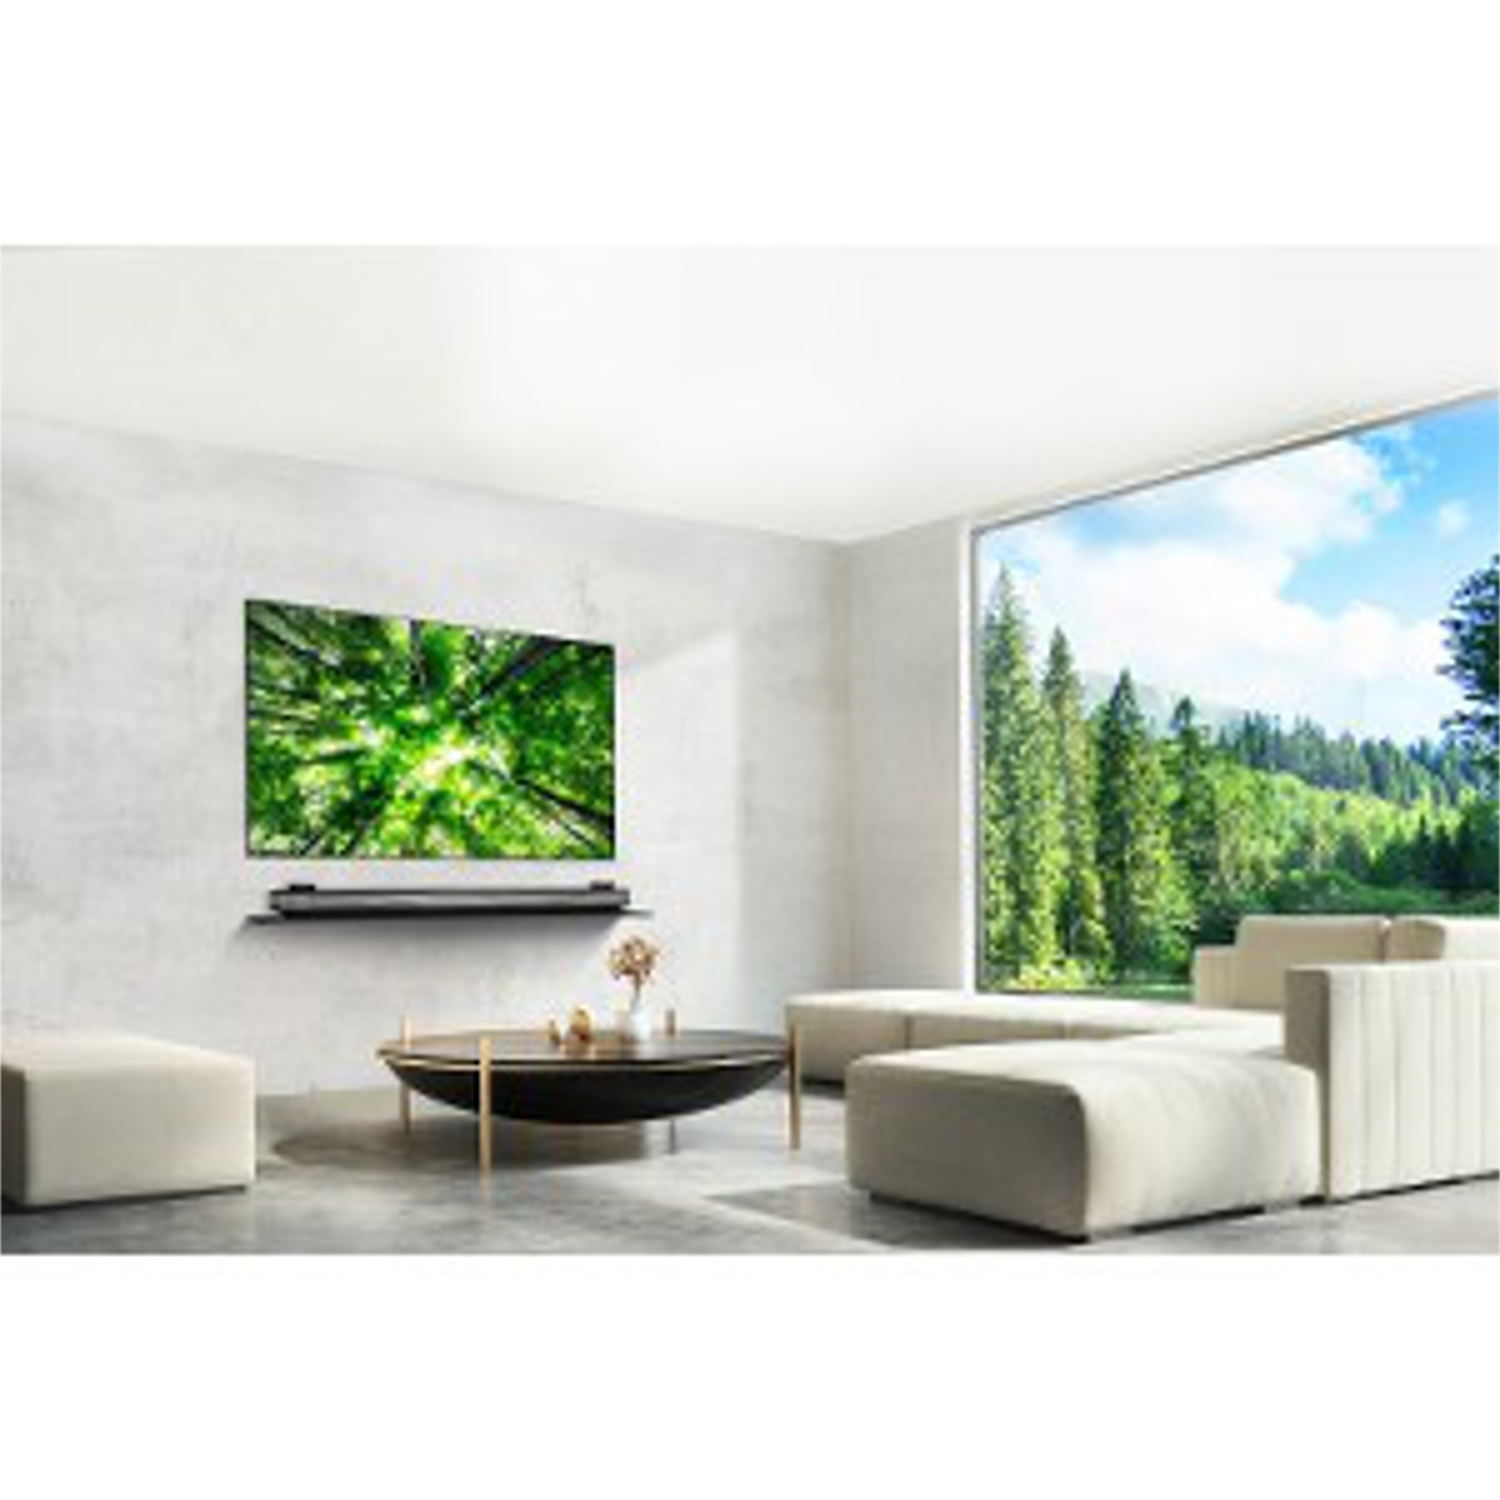 "LG 77"" Full HD OLED TV - 1"